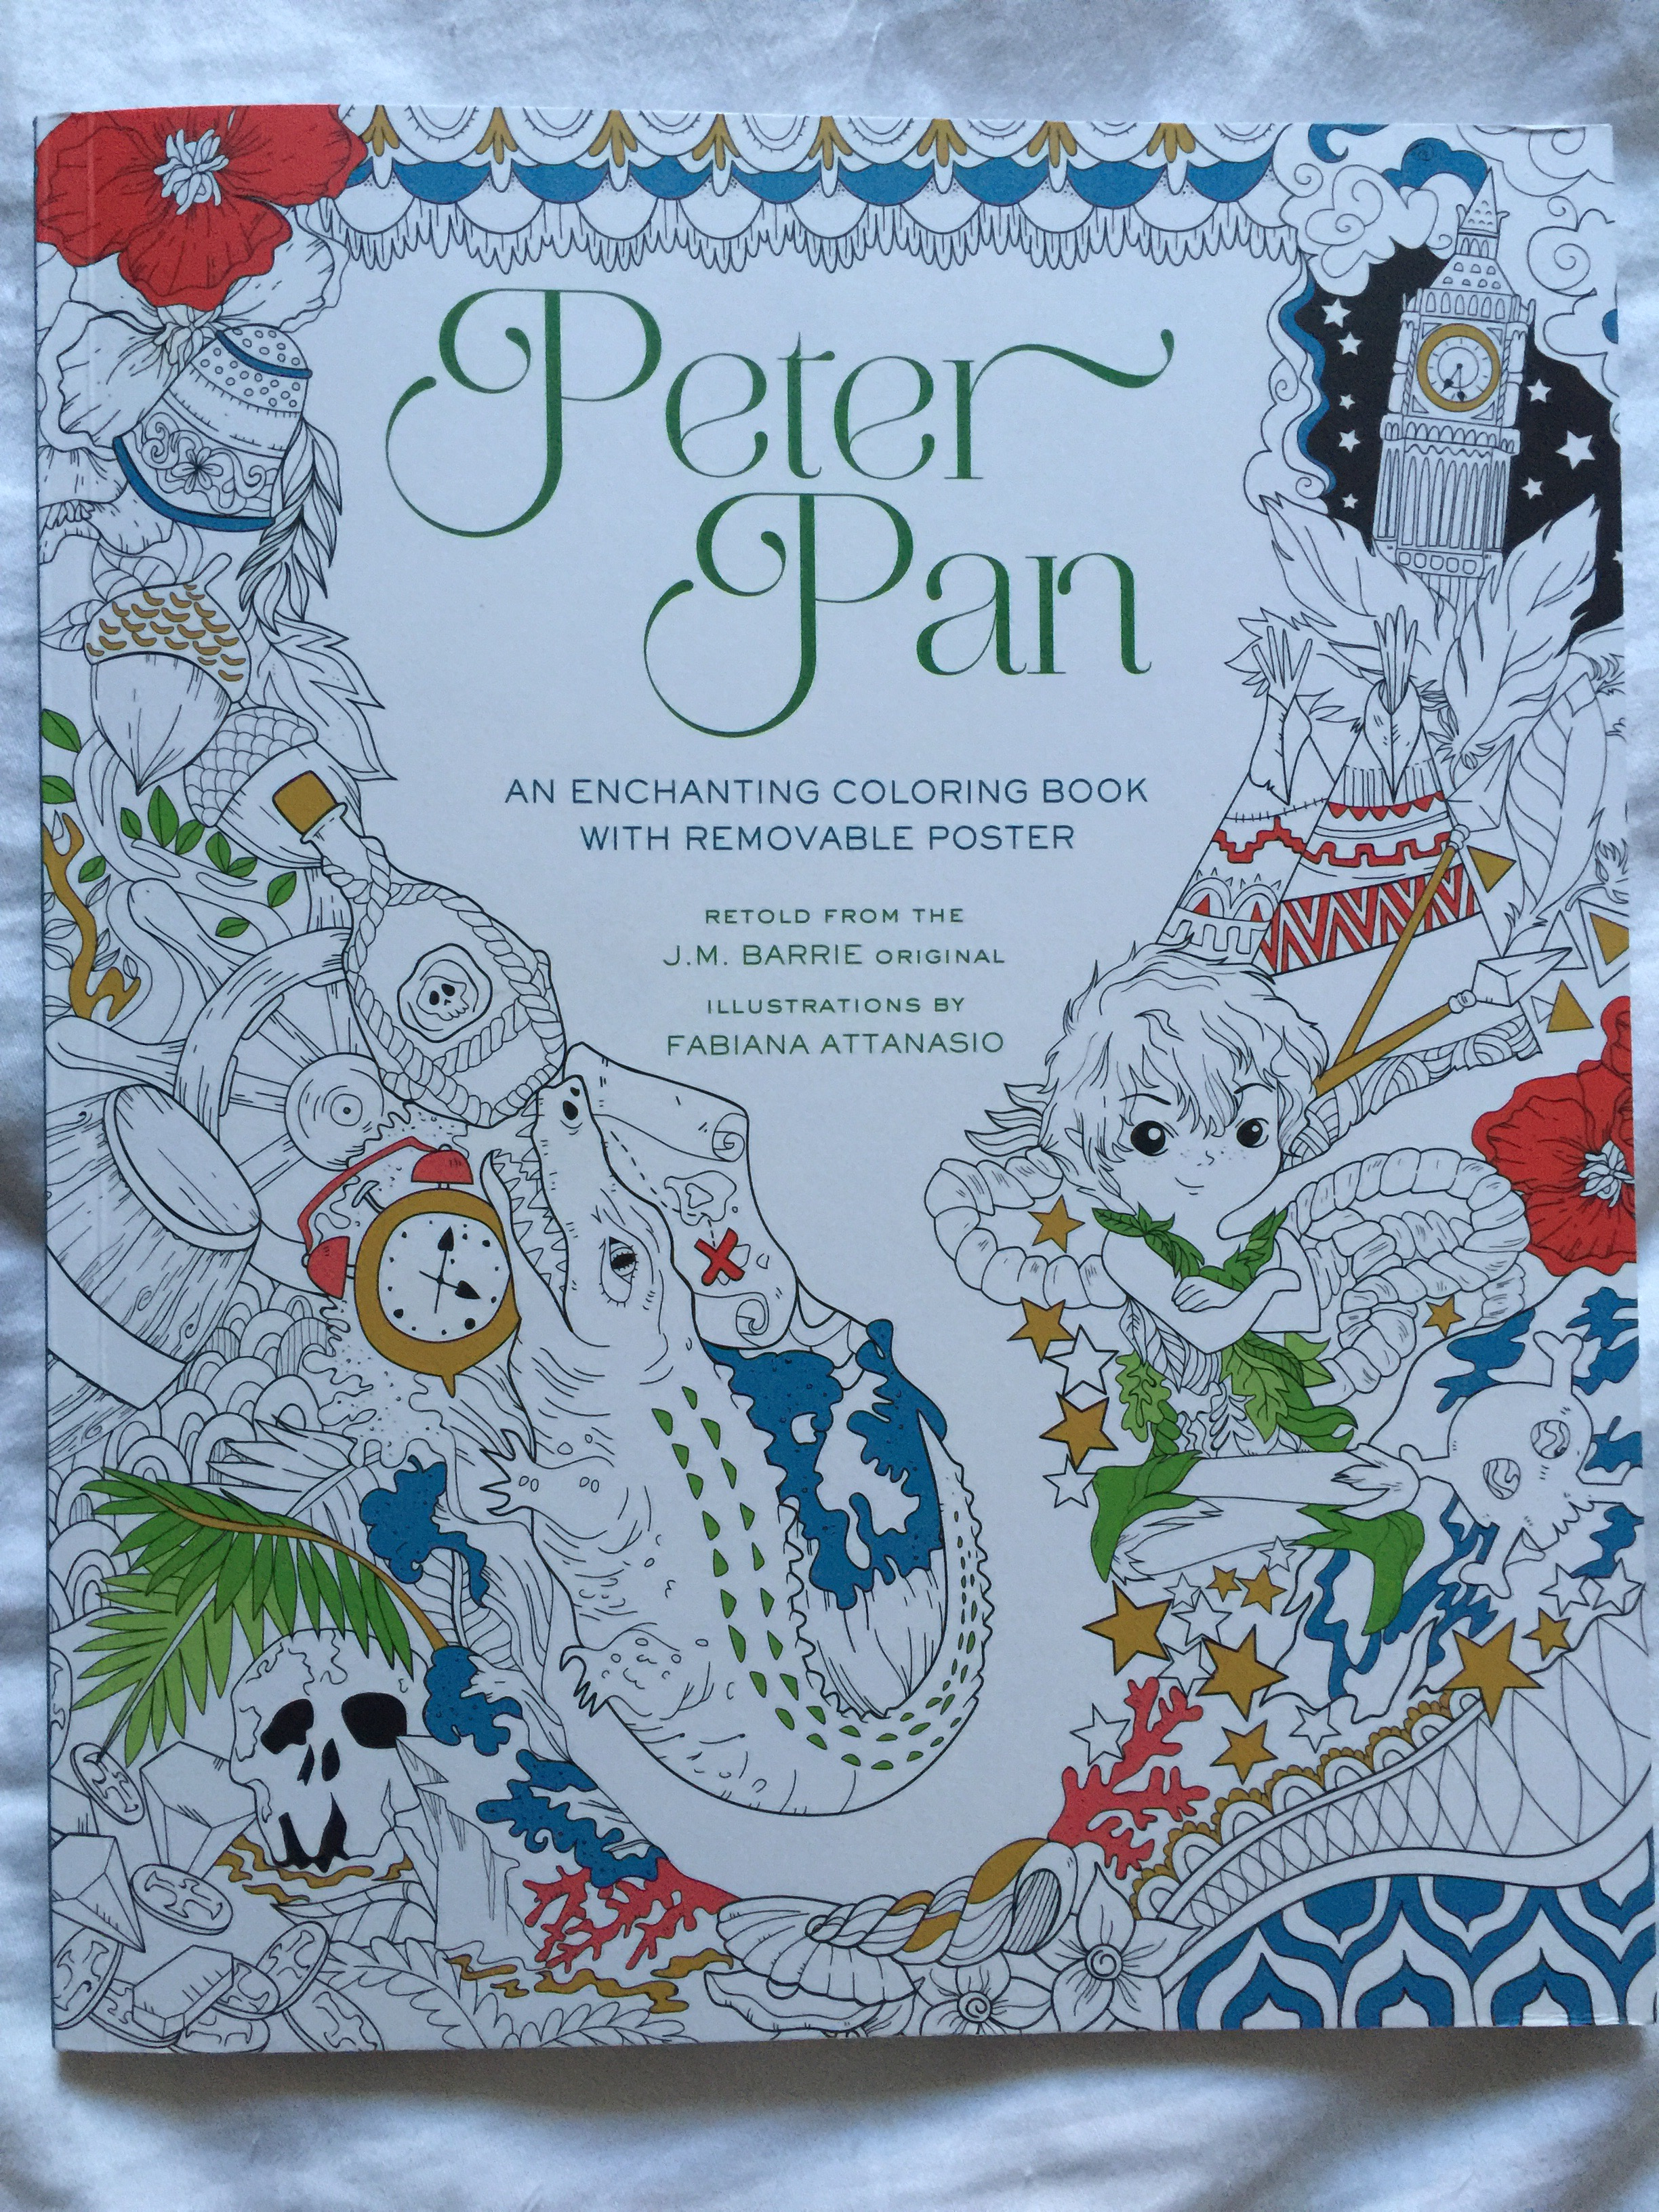 Peter Pan Coloring Book | Chronically Batgirl Colours